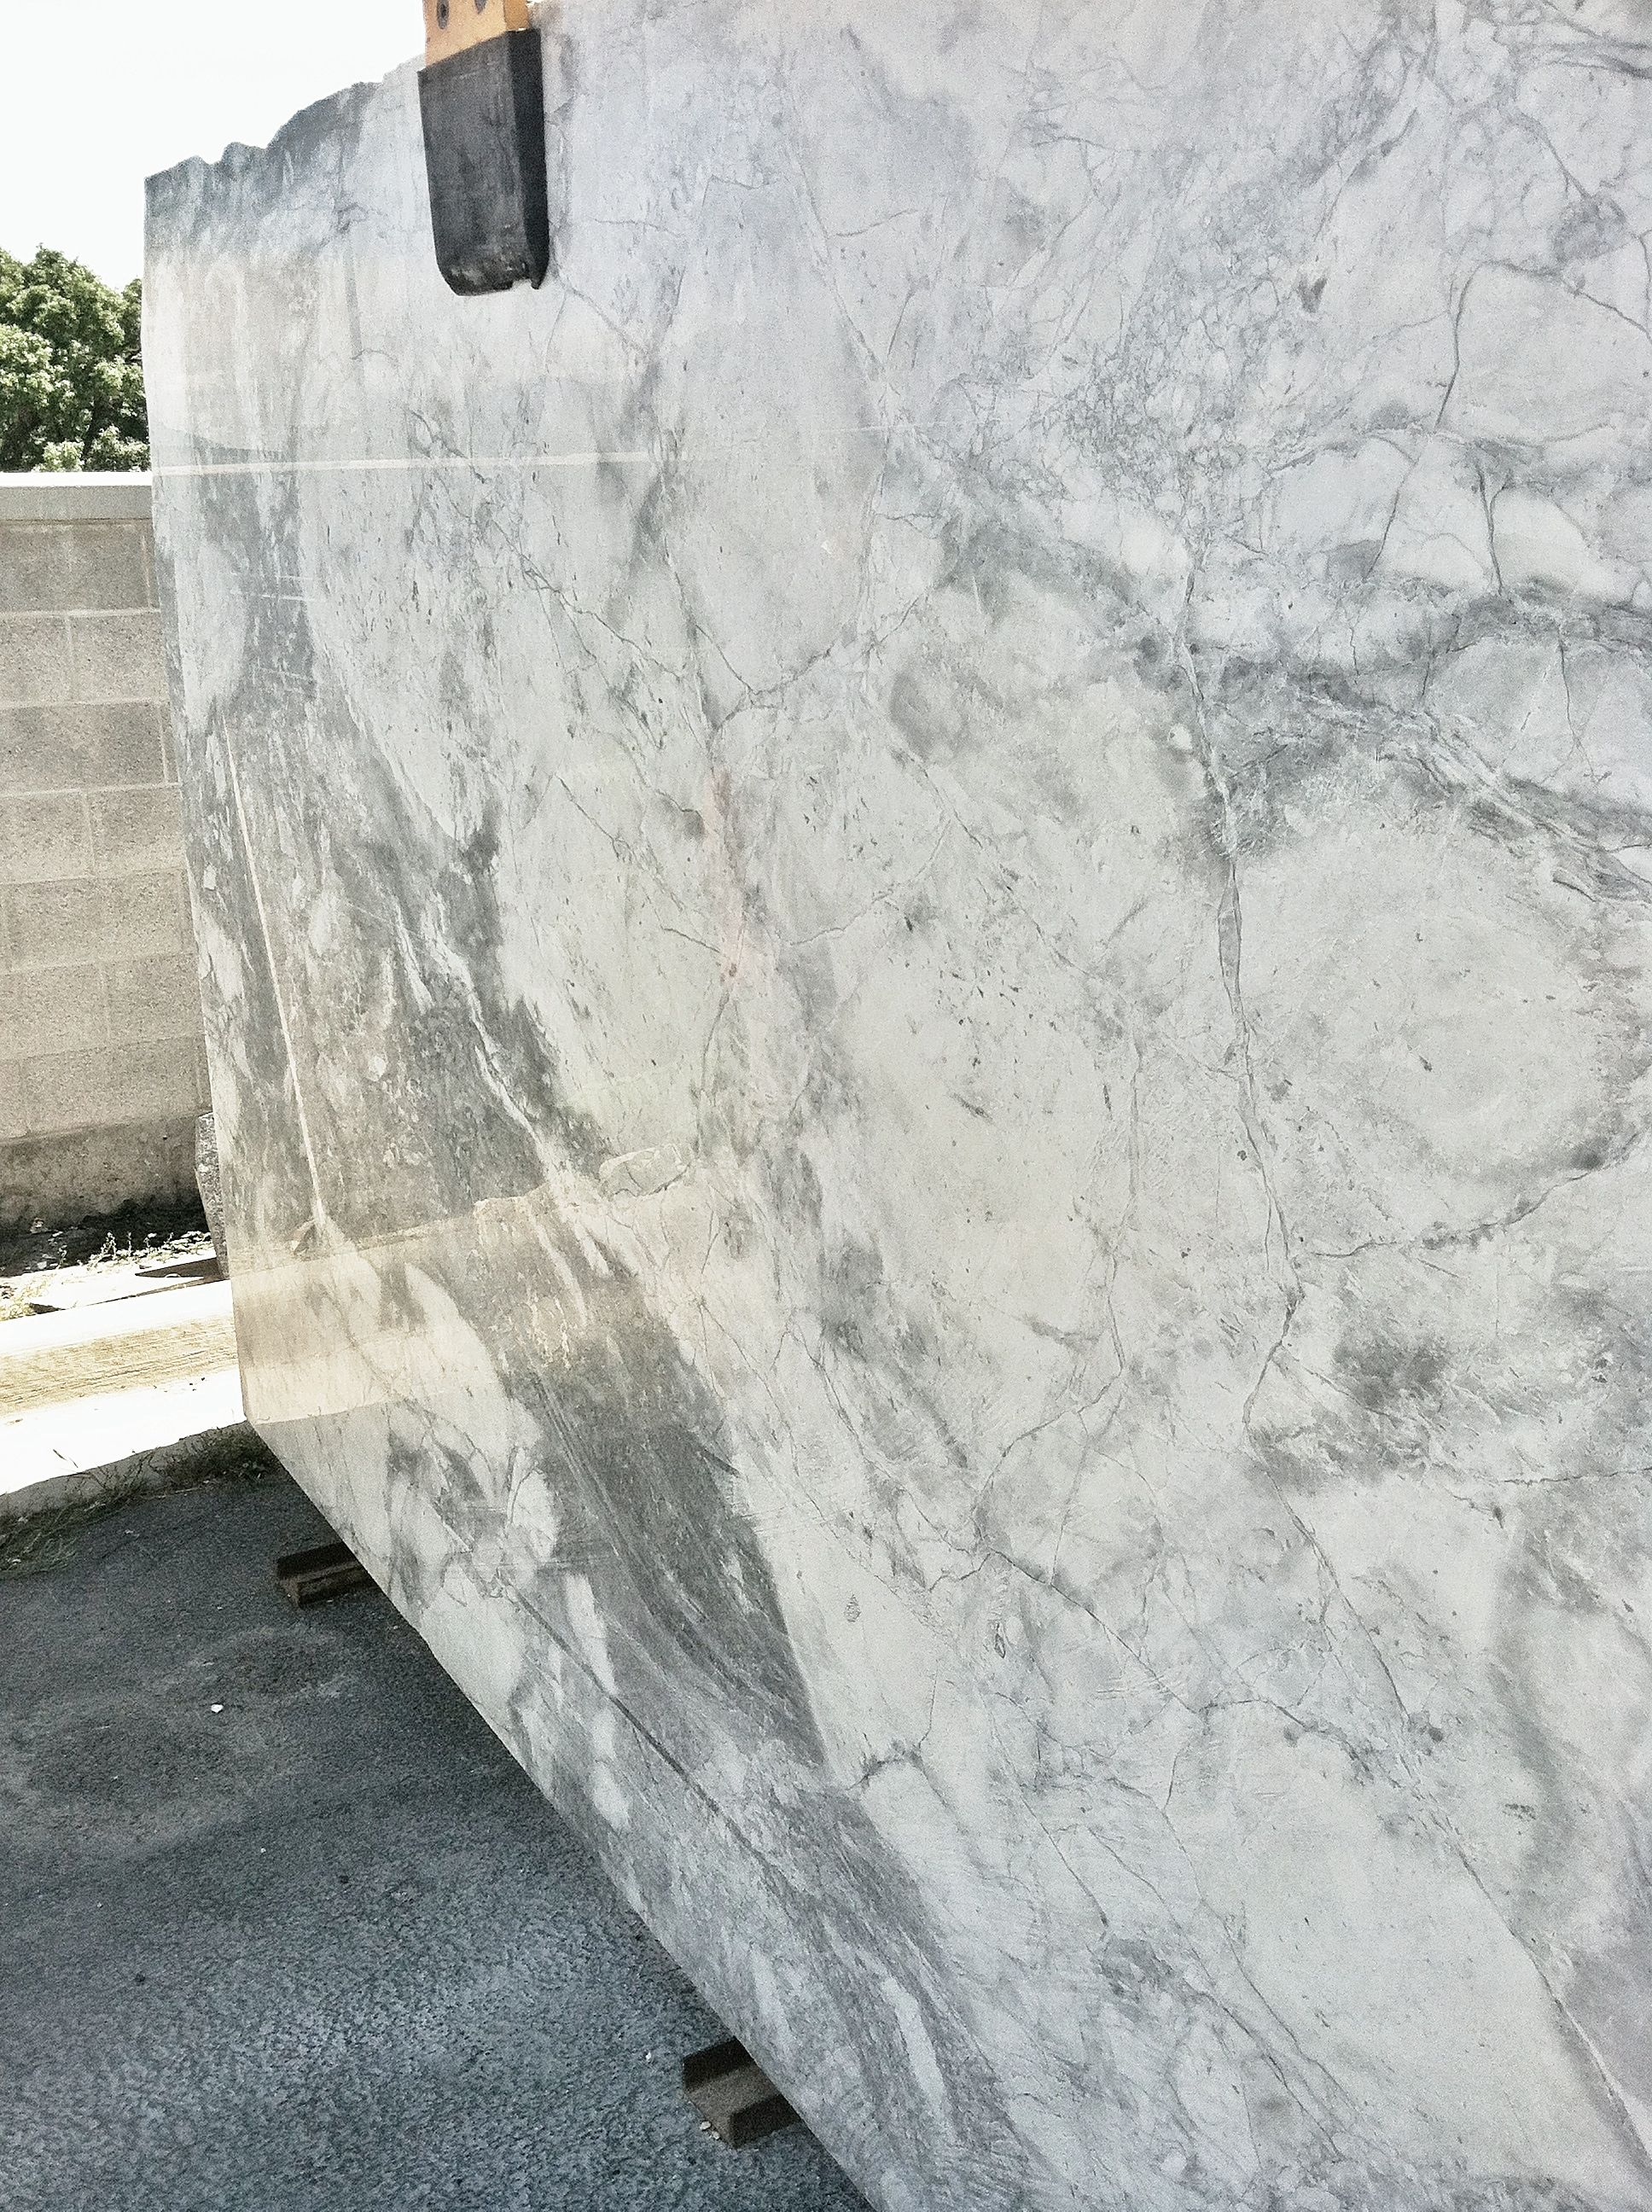 Just Picked Out Of Counter Super White Granite Looks Just Like Marble Super White Granite White Granite Grey Granite Countertops